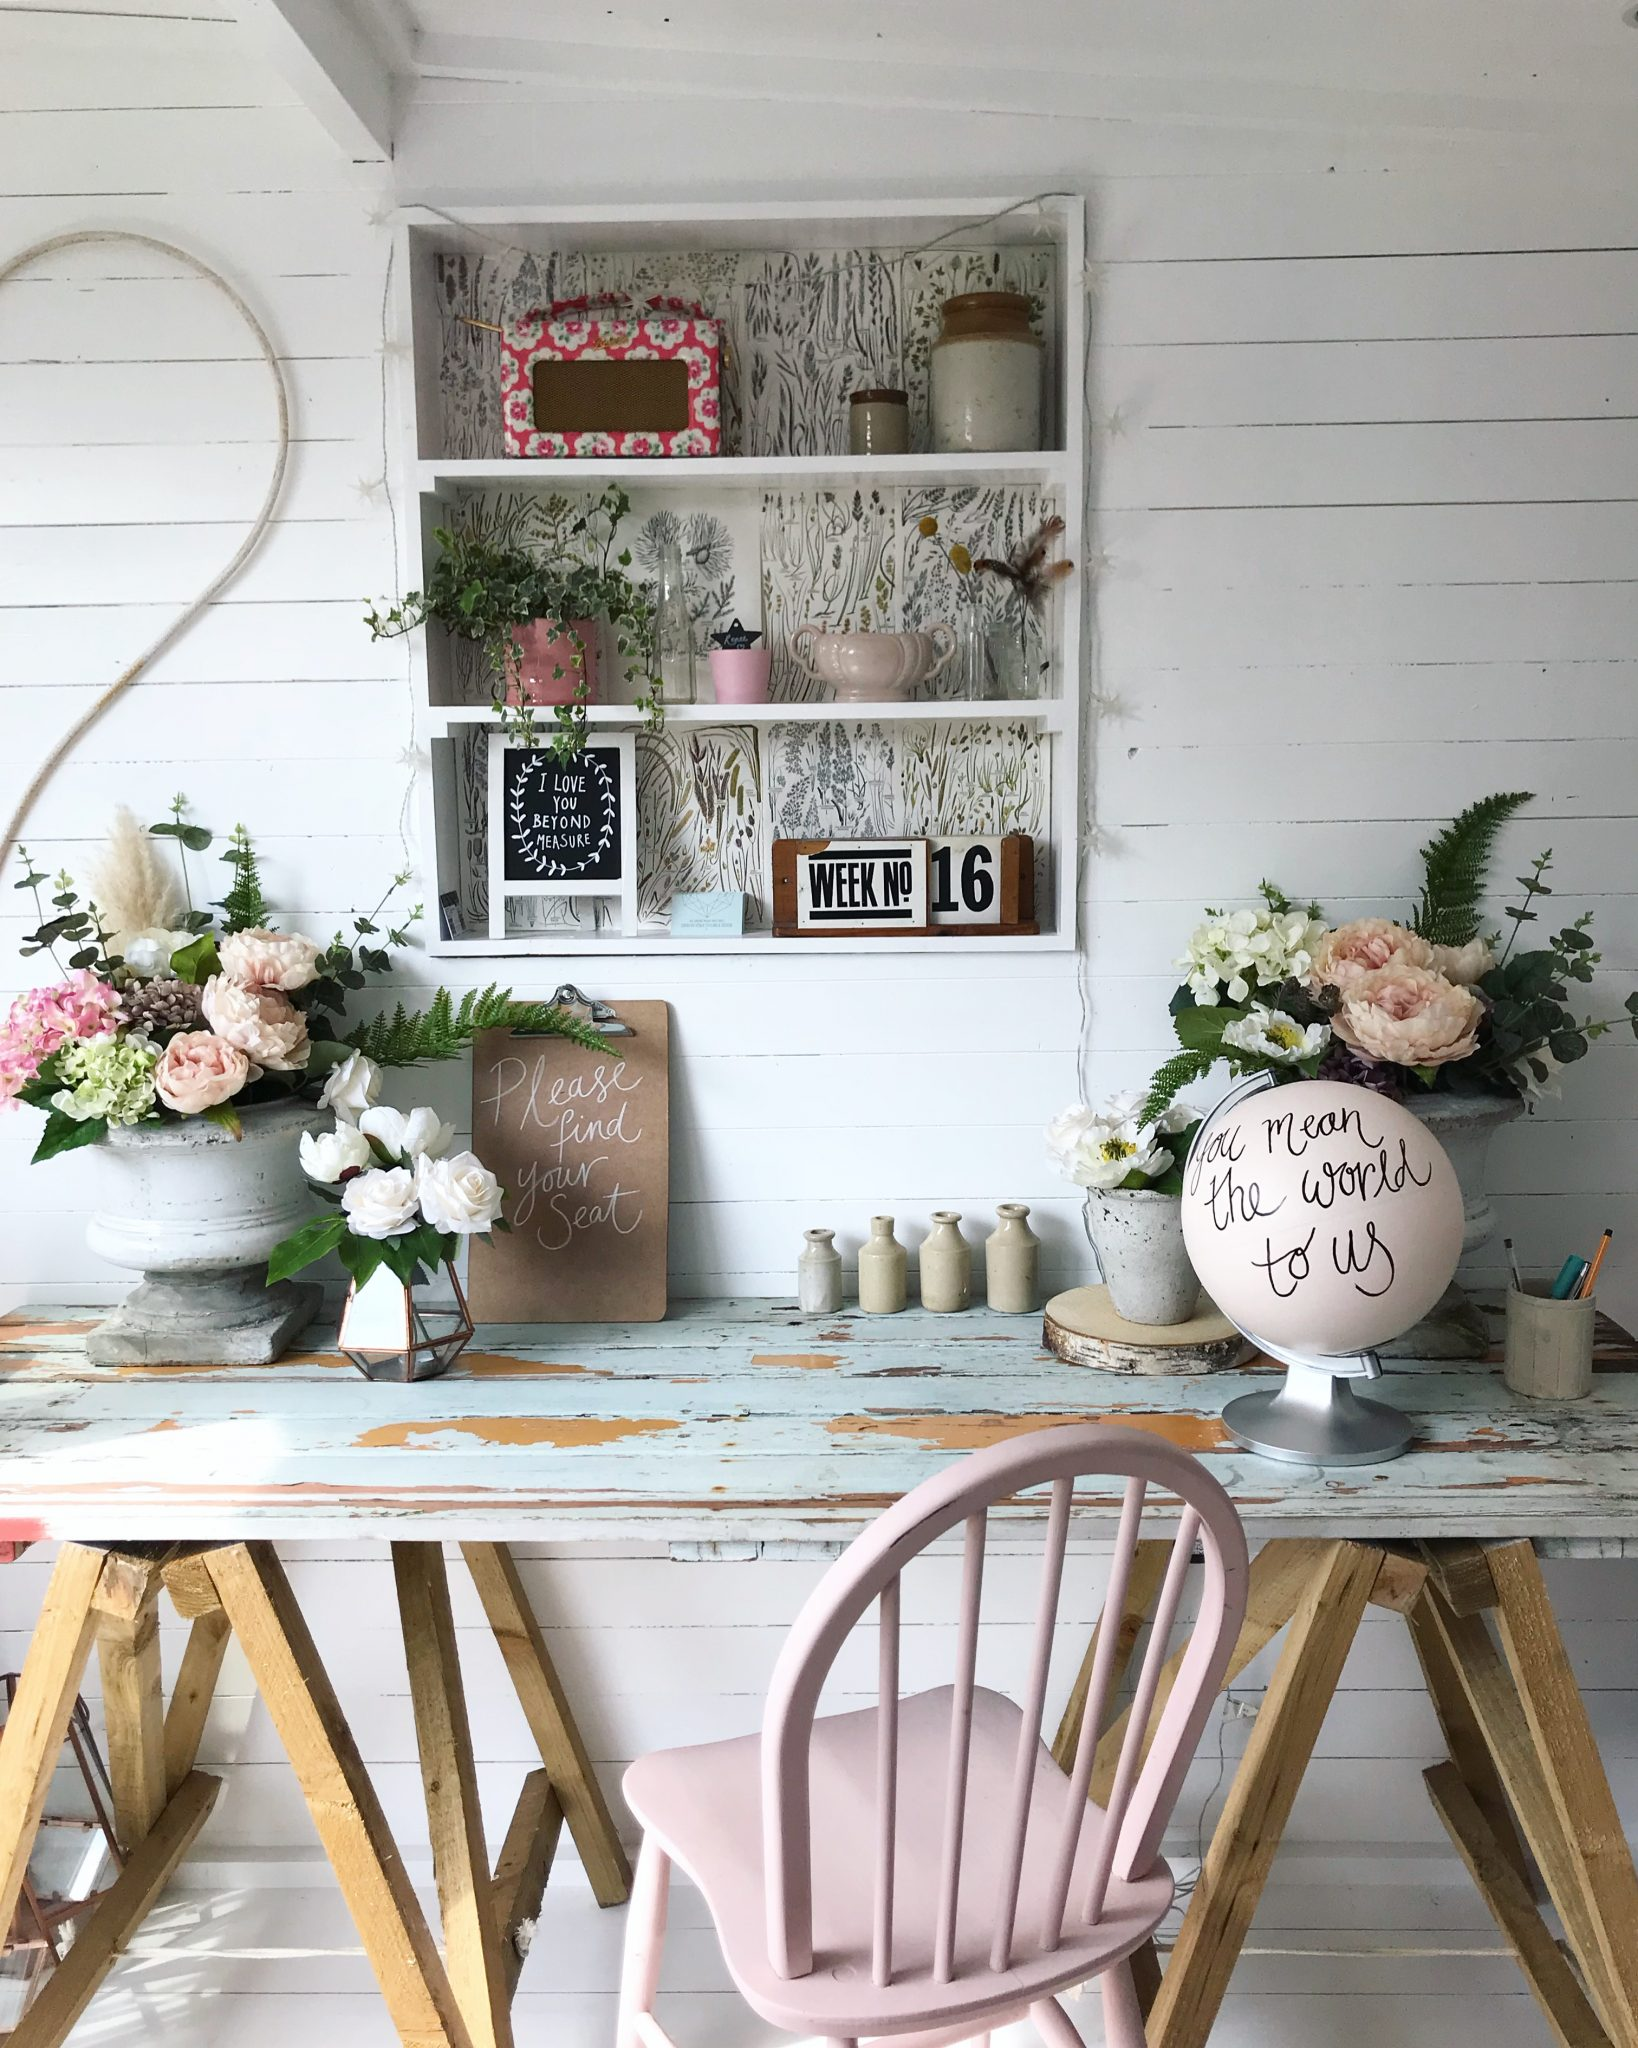 2018 In Review & Feeling Proud ⋆ The Vintage House That Could